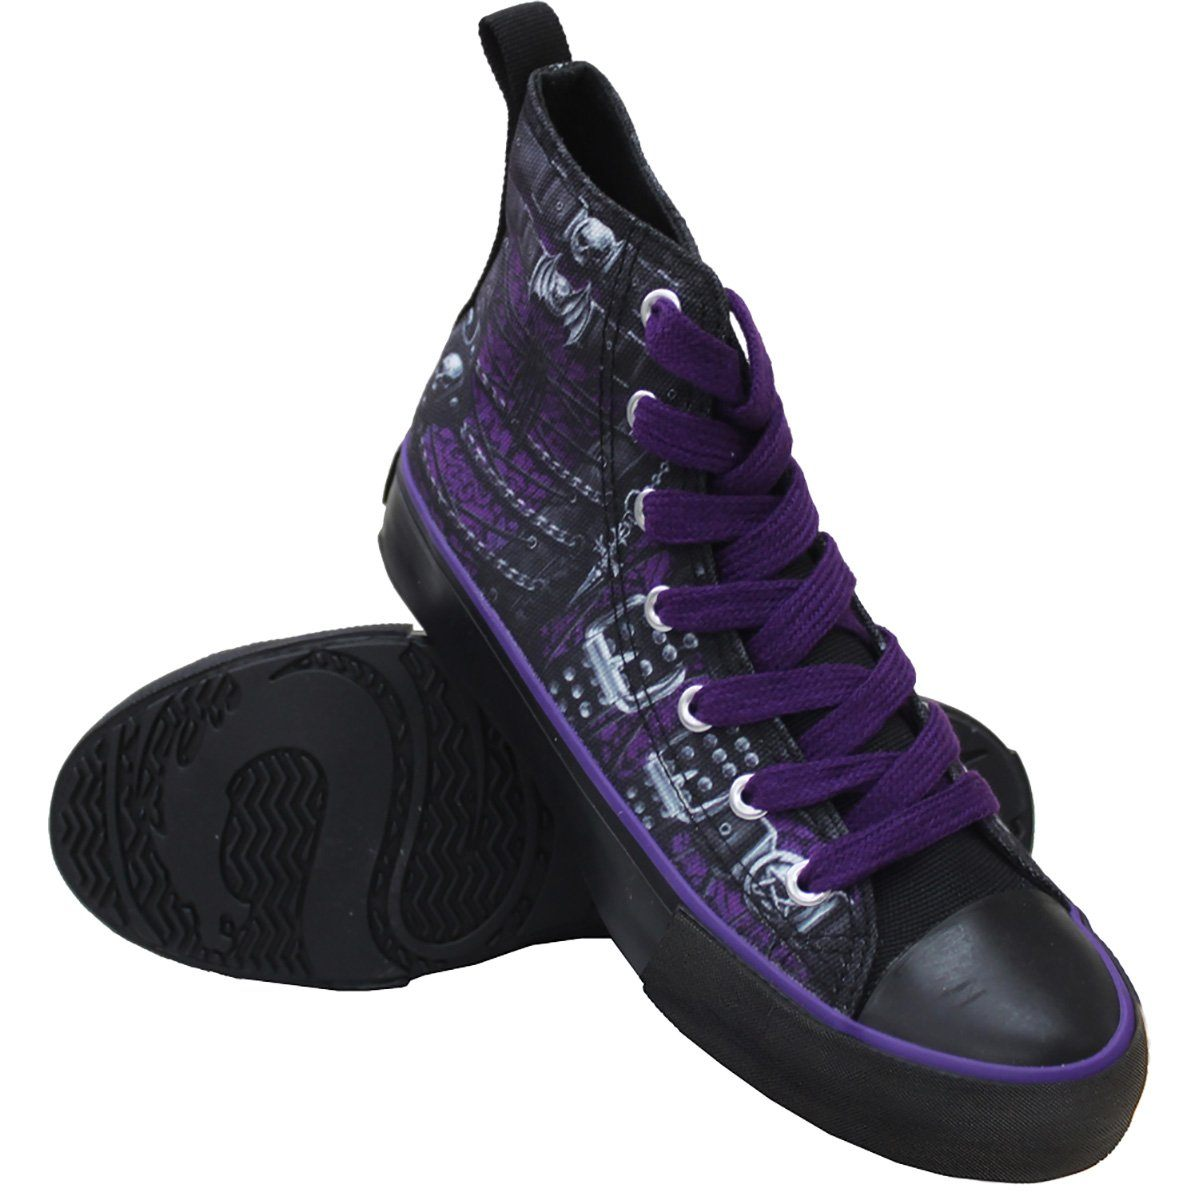 Gothic Corset Women's High-Top Sneakers - Rebels Depot